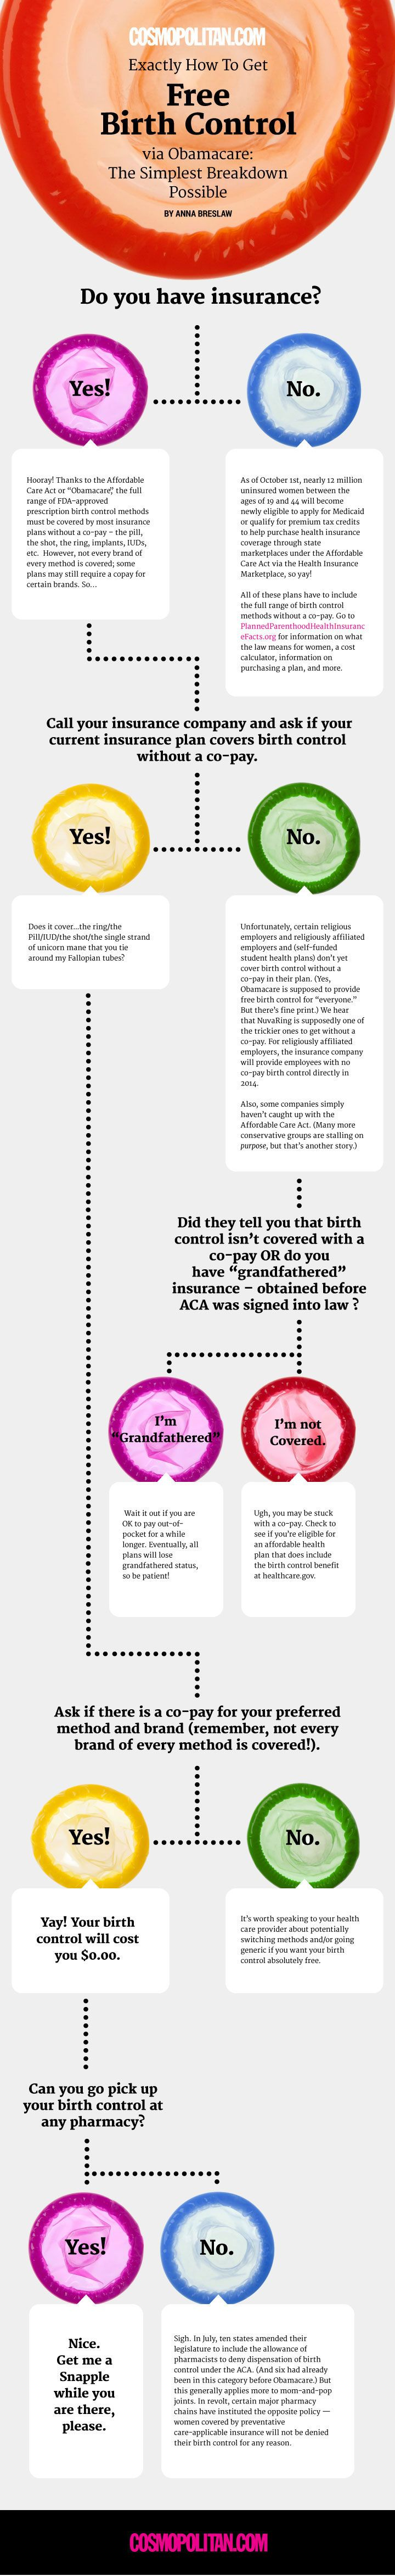 How To Get Free Birth Control Via Obamacare A Walkthrough Birth Control Birth Control Methods Family Planning